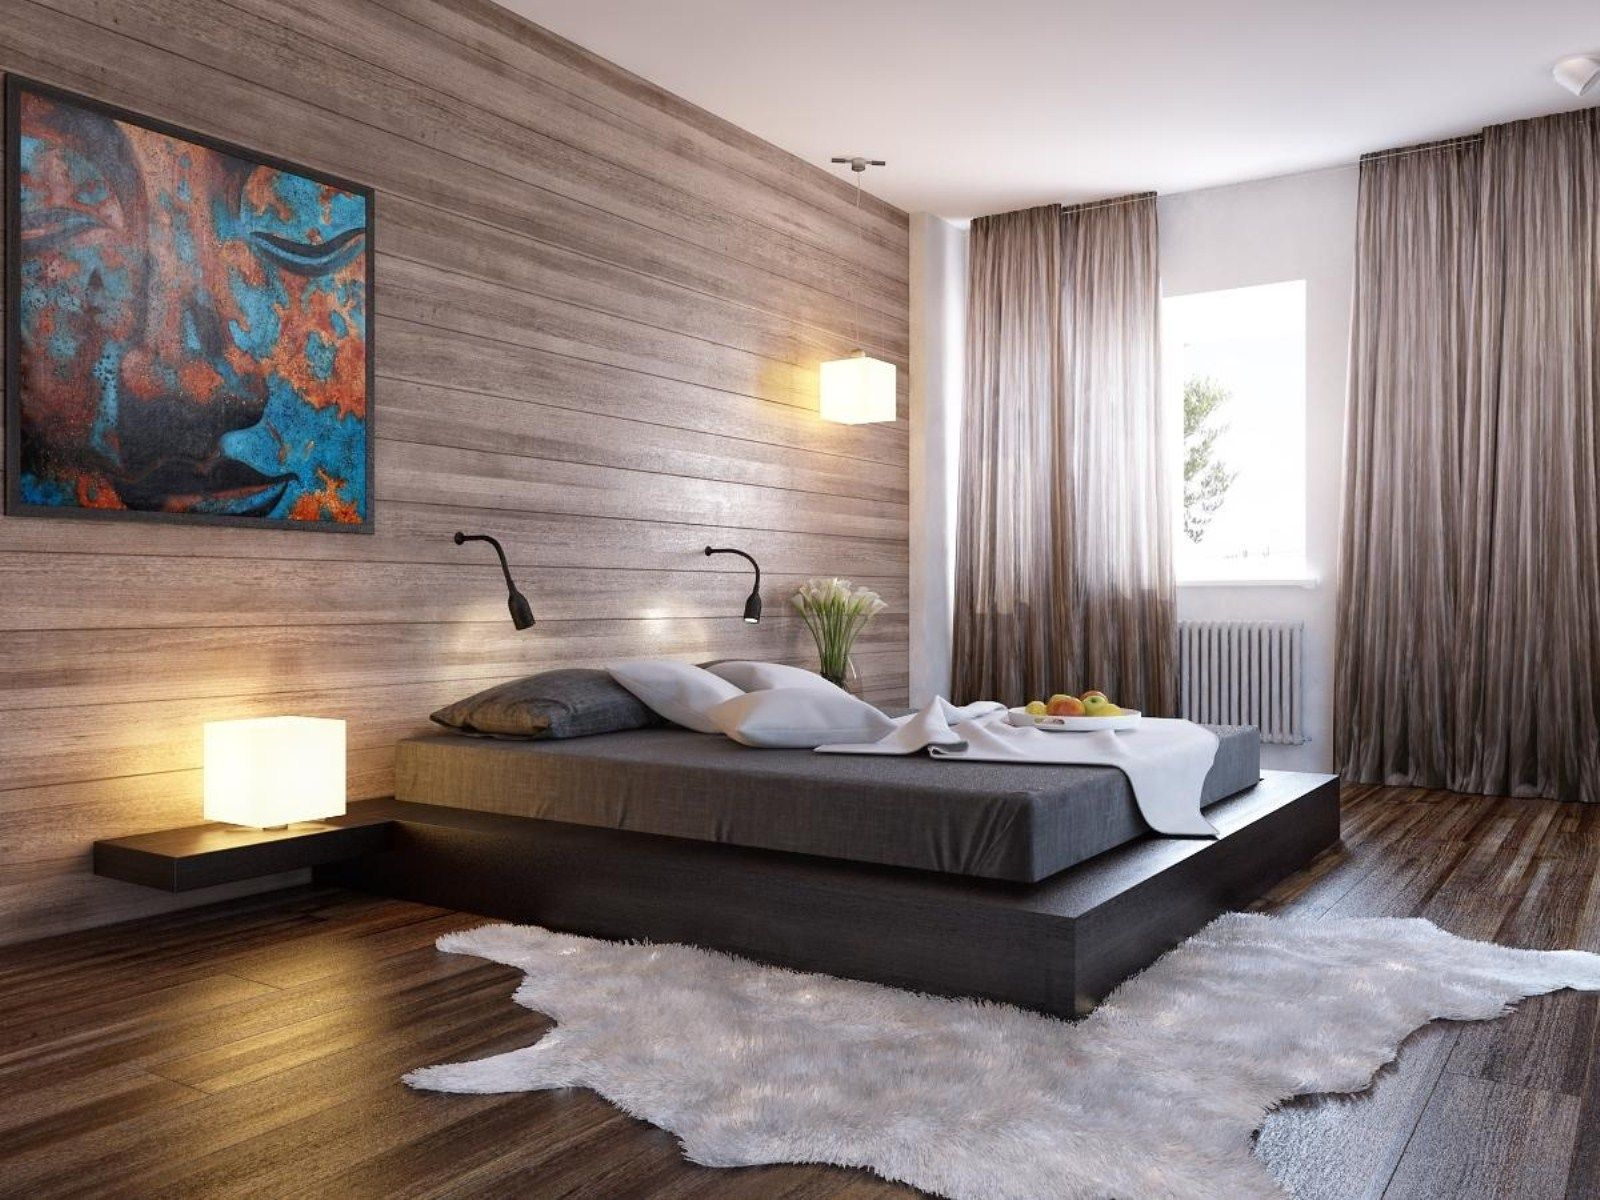 Astonishing Ikea Home Design Colors Fascinating Luxurious Home Designs  Pleasant Features Blend, Tips On How To Make Designing A Modern Bedroom  Black Bed ...